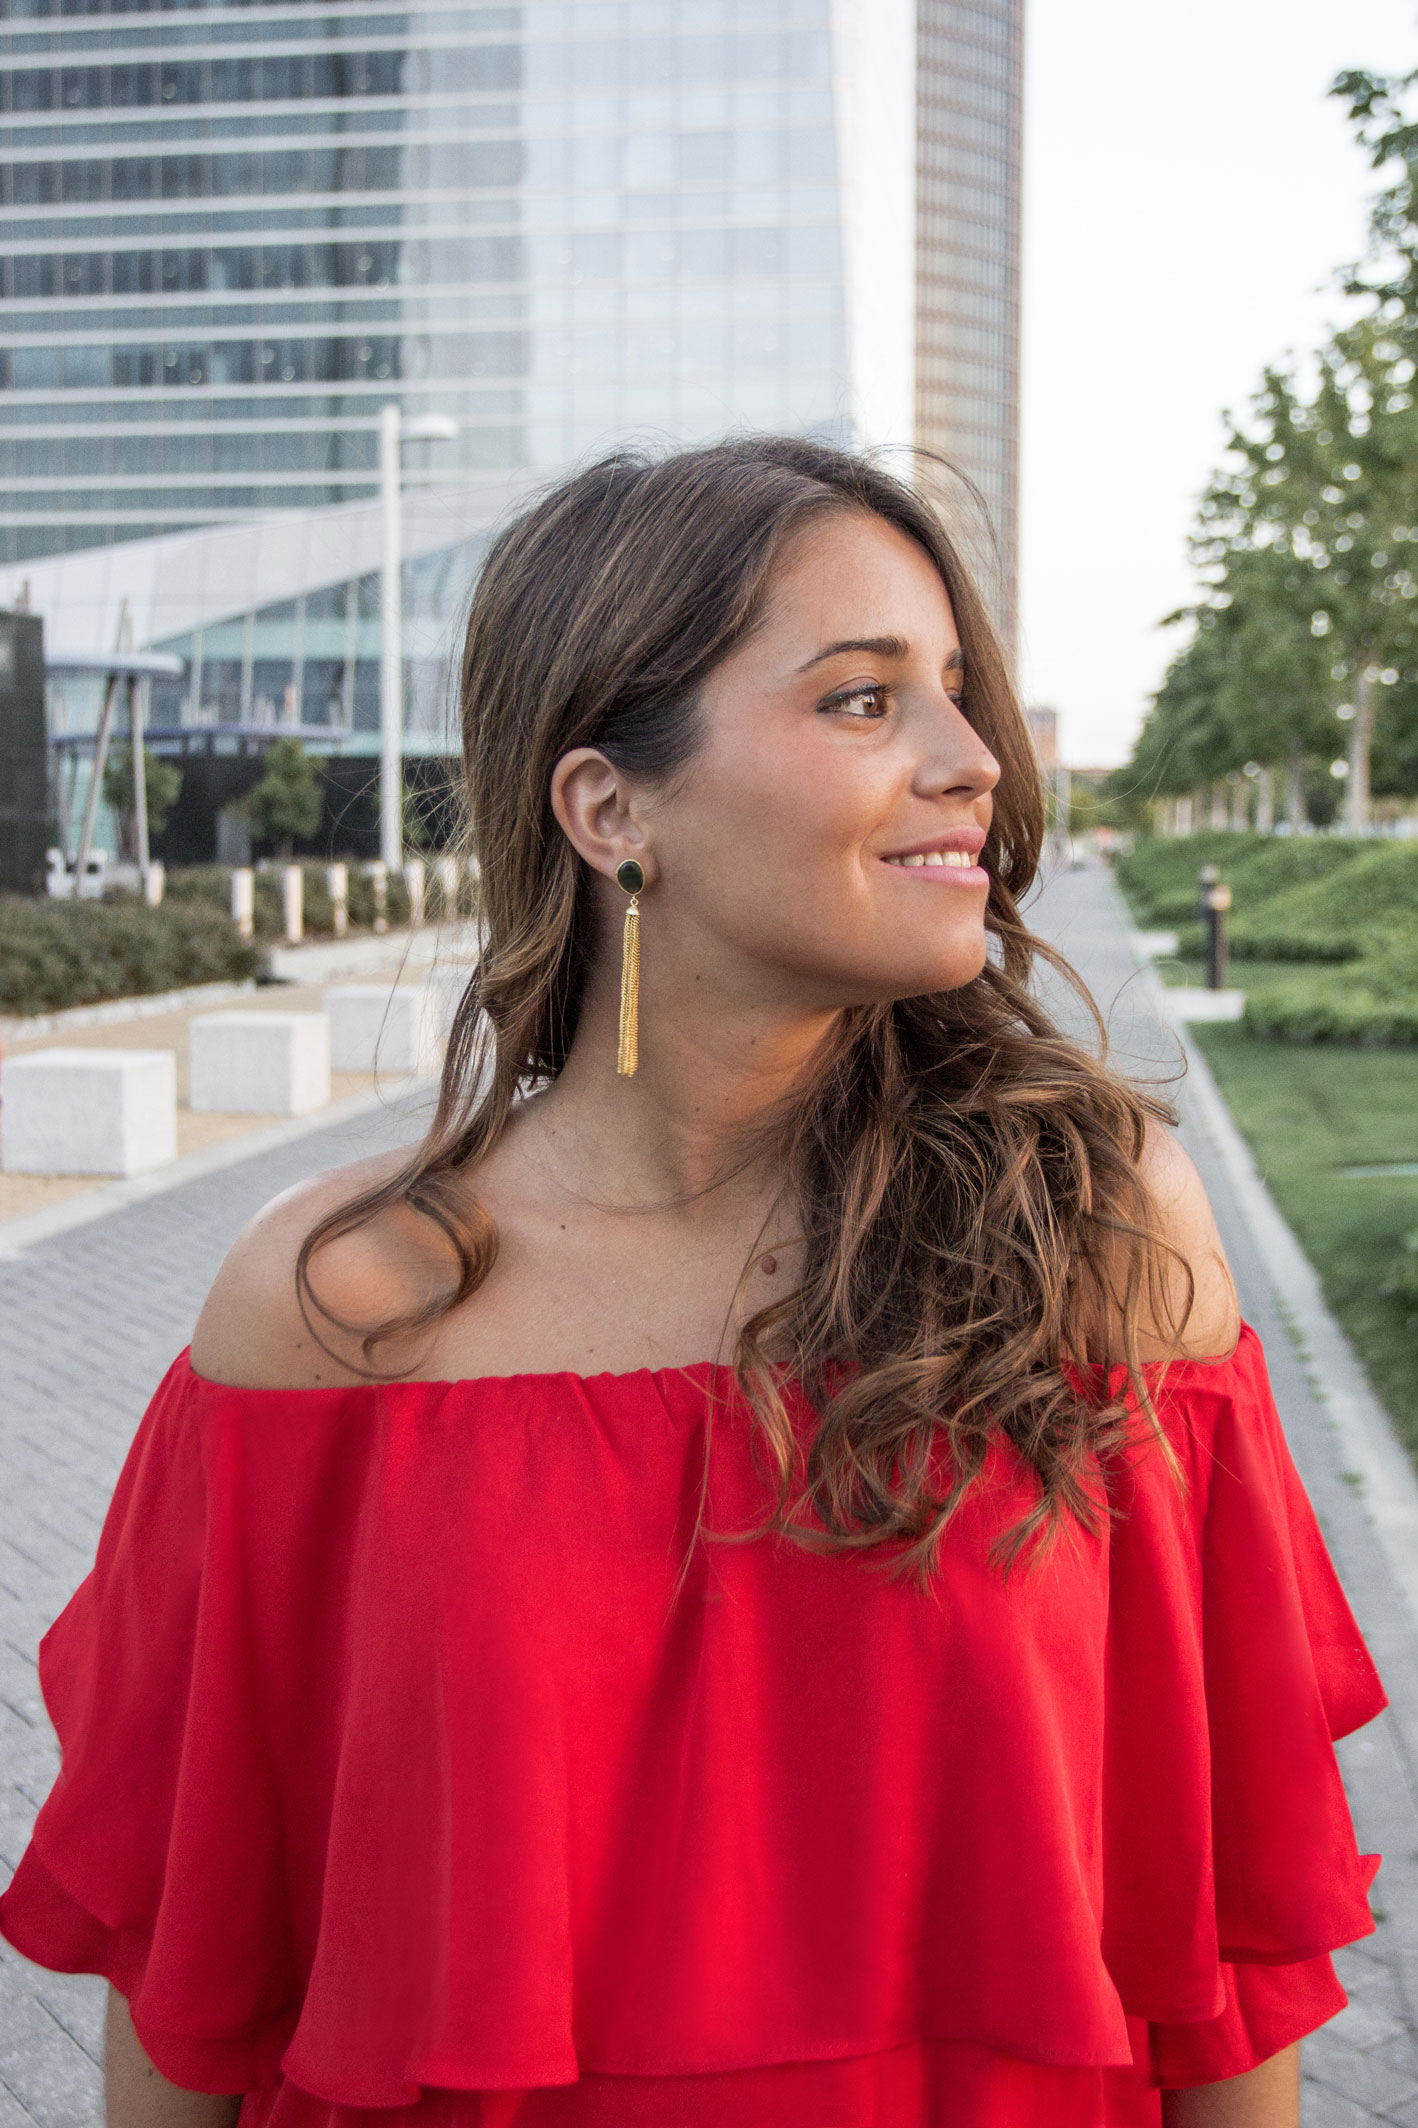 madeinstyle_she_in_red_dress_vestido_rojo_summer_closs_earrings-11